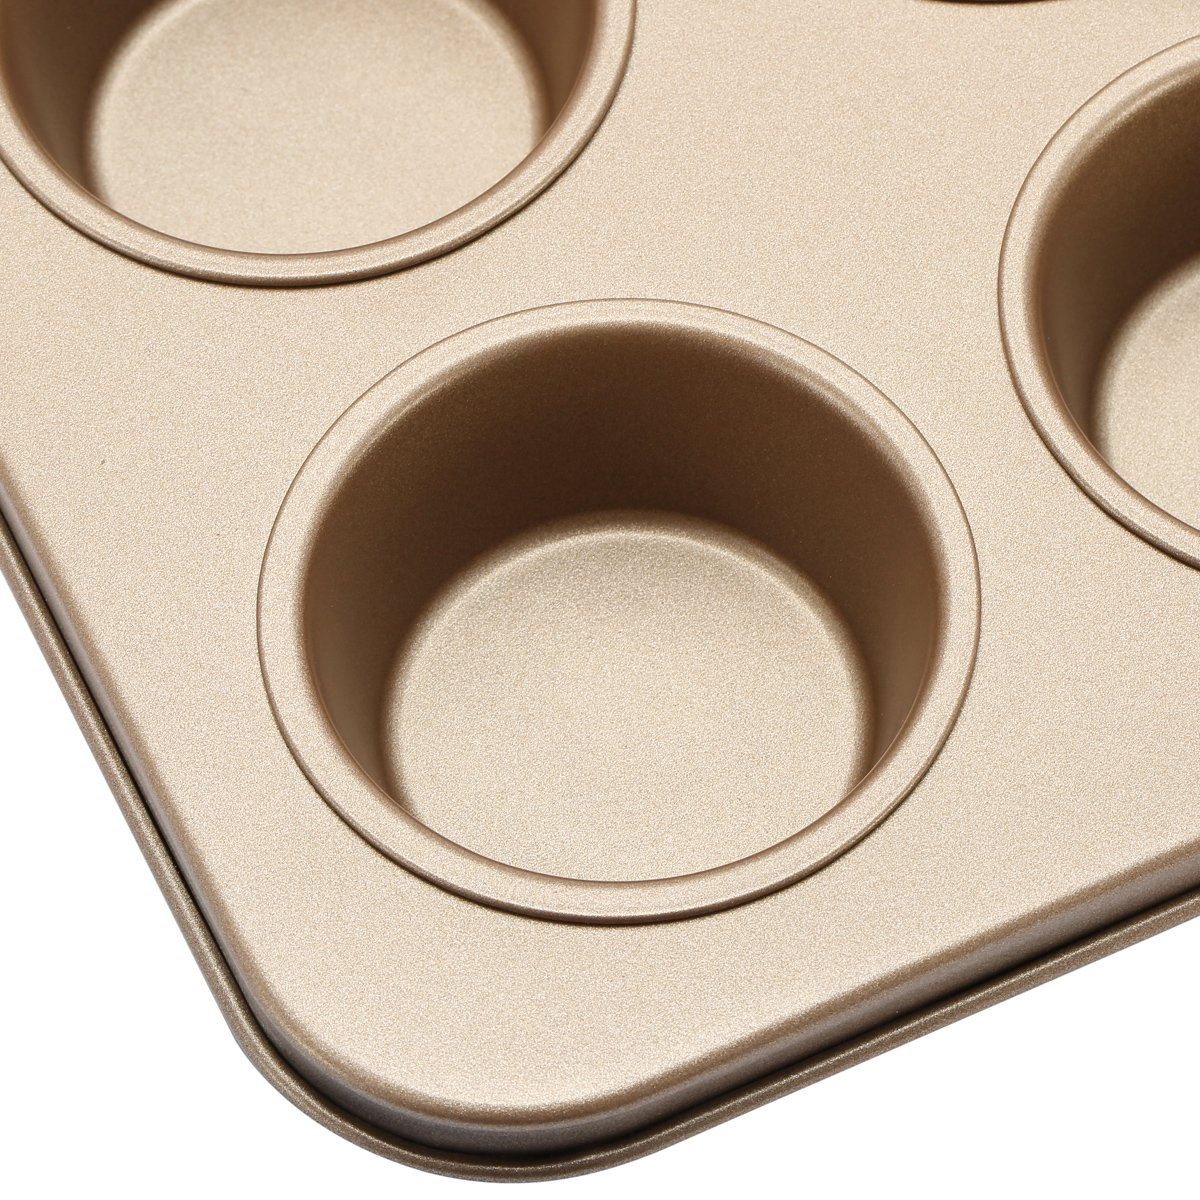 Fishonly Carbon Steel Nonstick 9 Cups Muffin Pan Cupcake Tart Mold Tray Cookie Bake Pan (Round) by fishonly (Image #3)